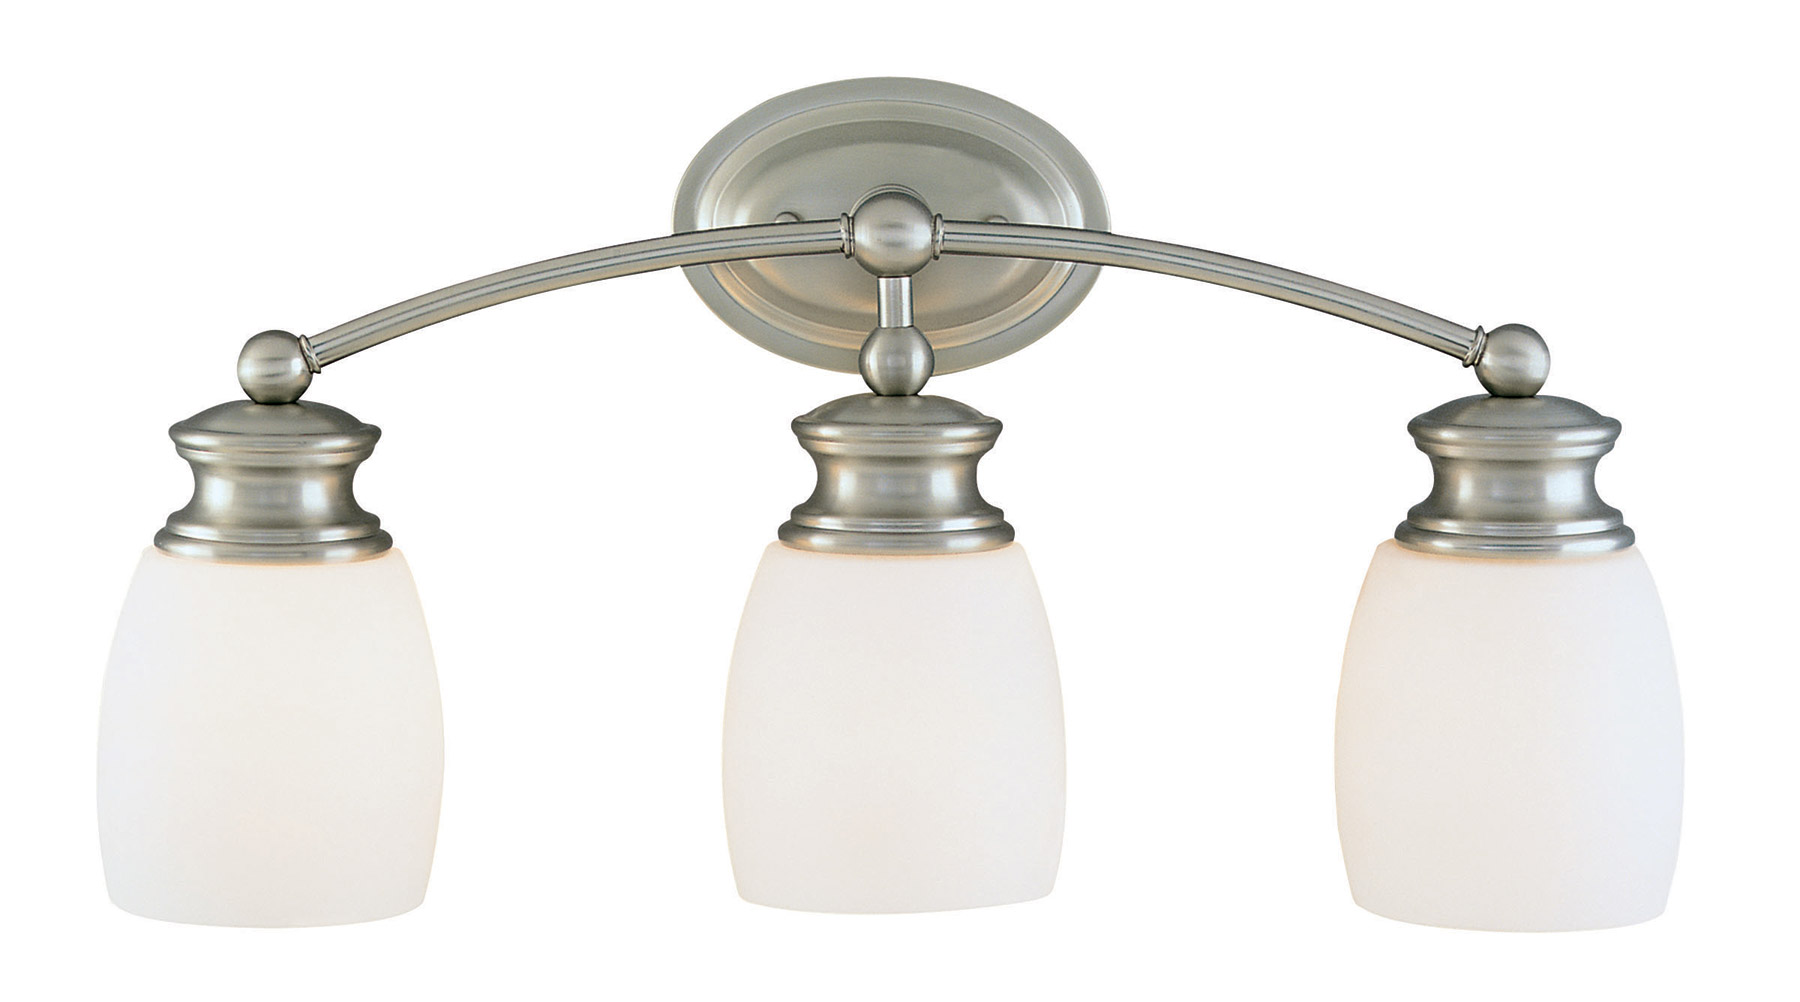 Savoy House 8 9127 3 Sn Bath Vanity Light